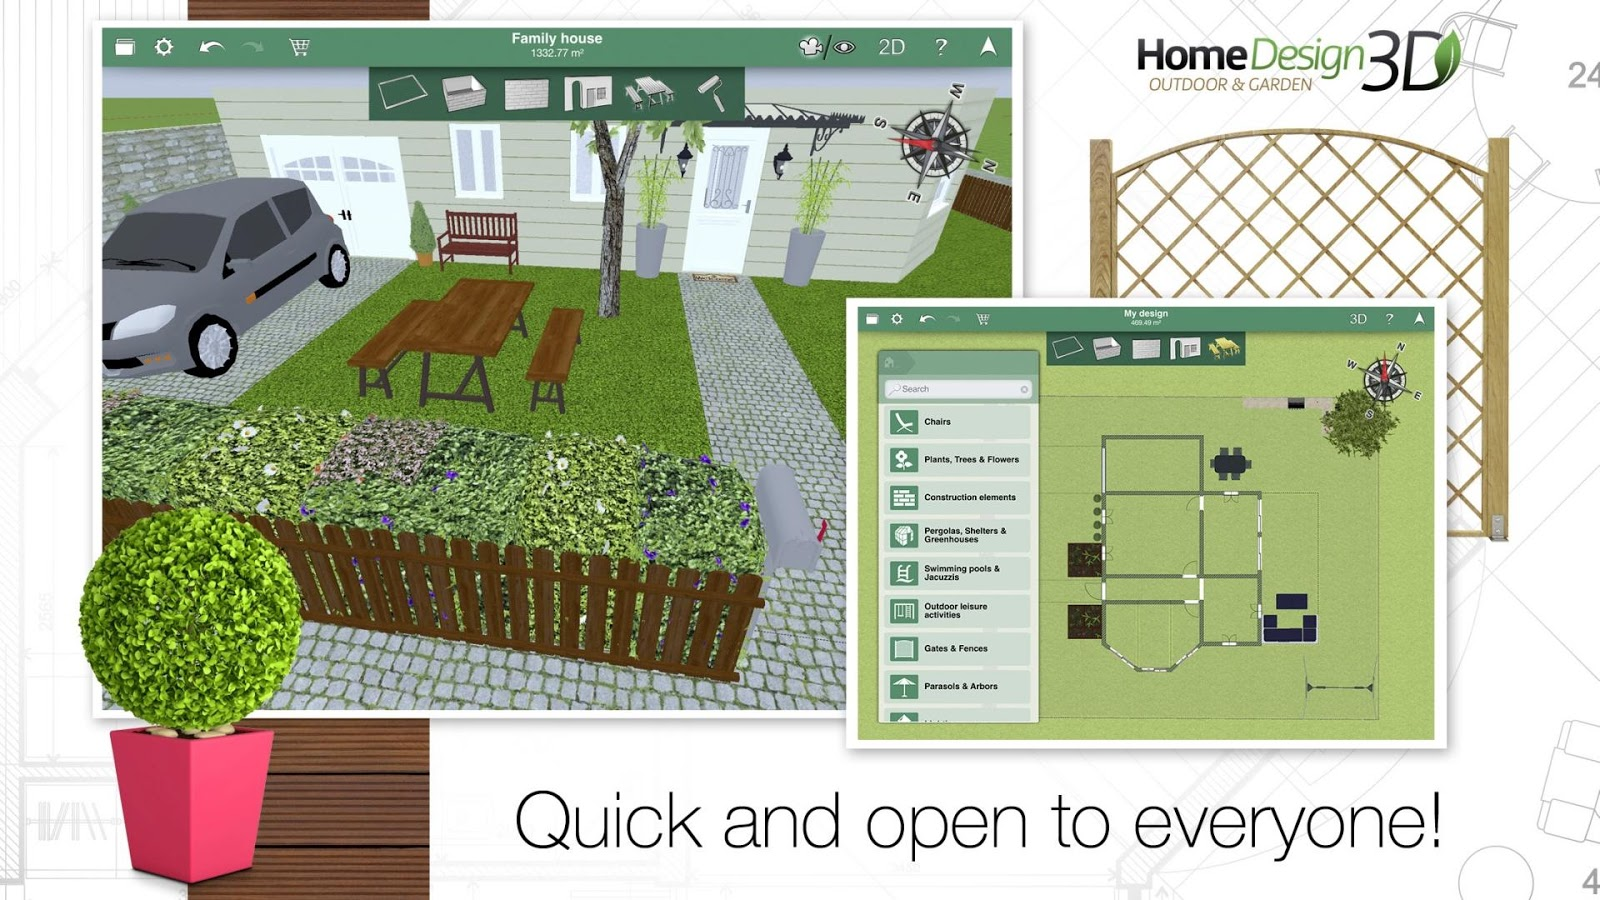 Home Design 3D Outdoor/Garden Slides Into The Play Store ...